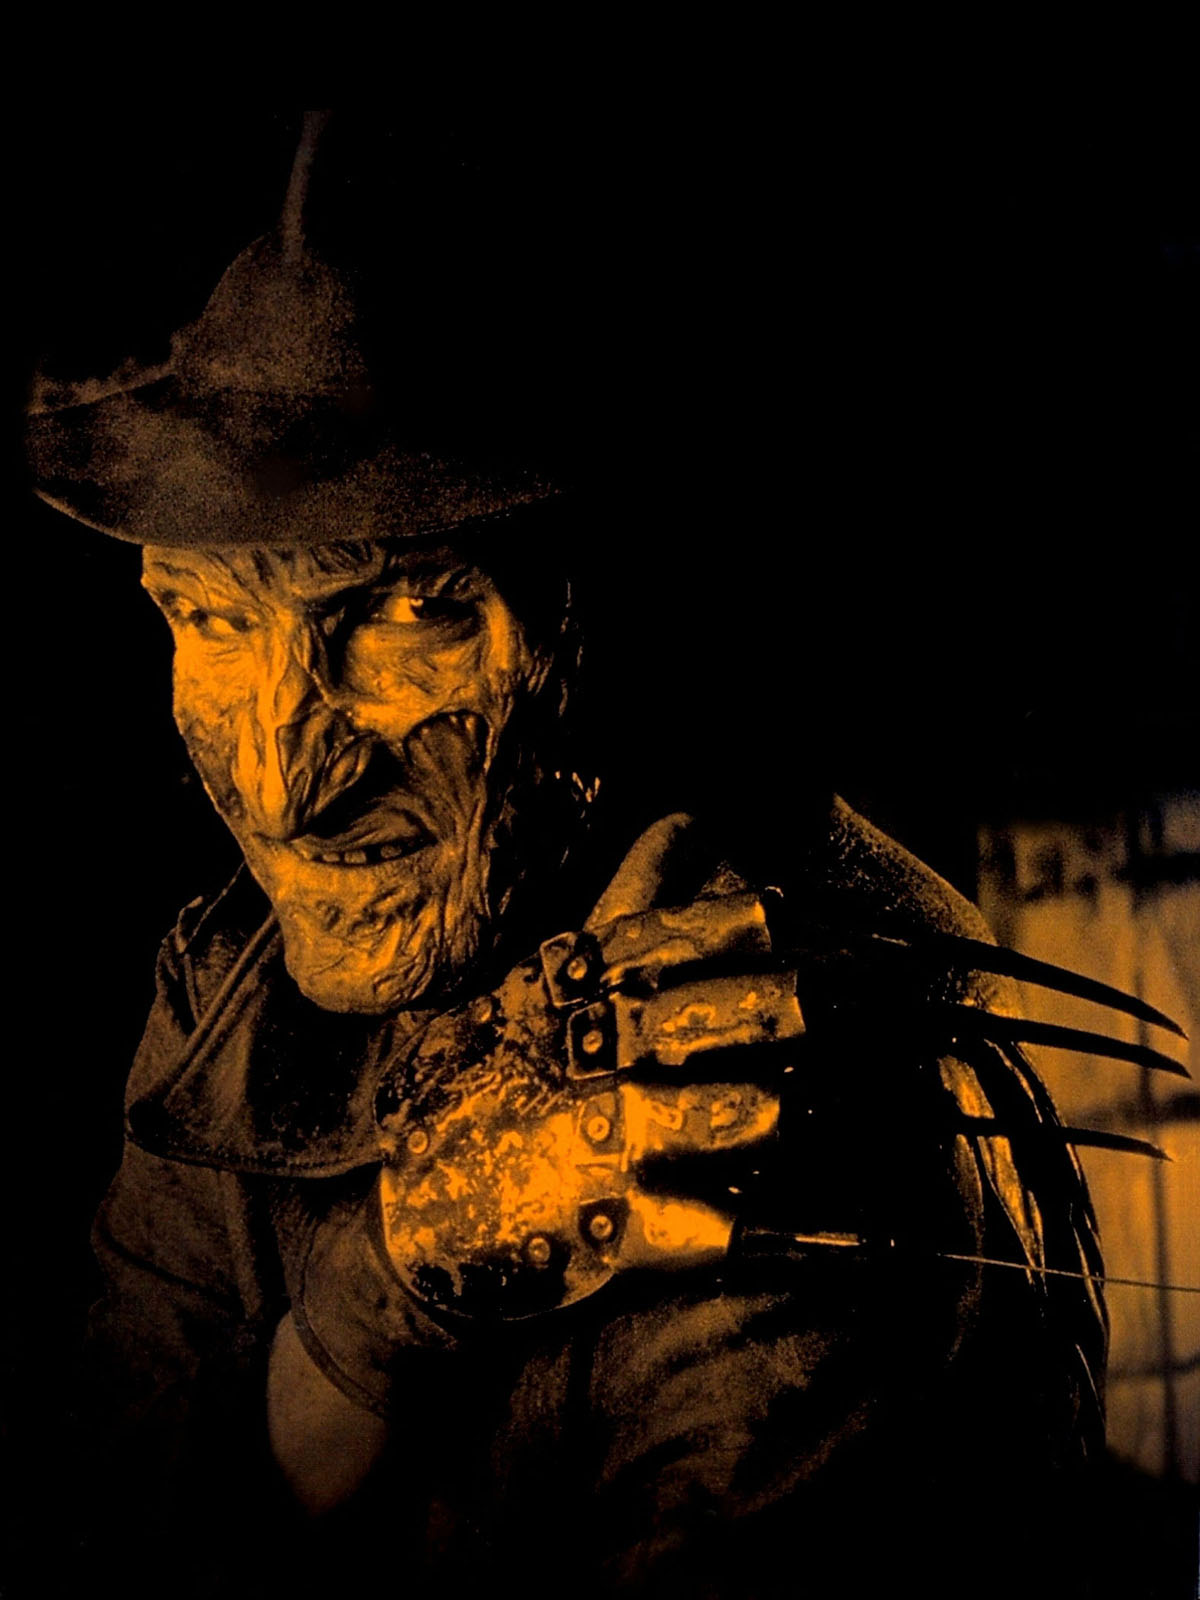 Central Wallpaper: Freddy Krueger HD Wallpapers